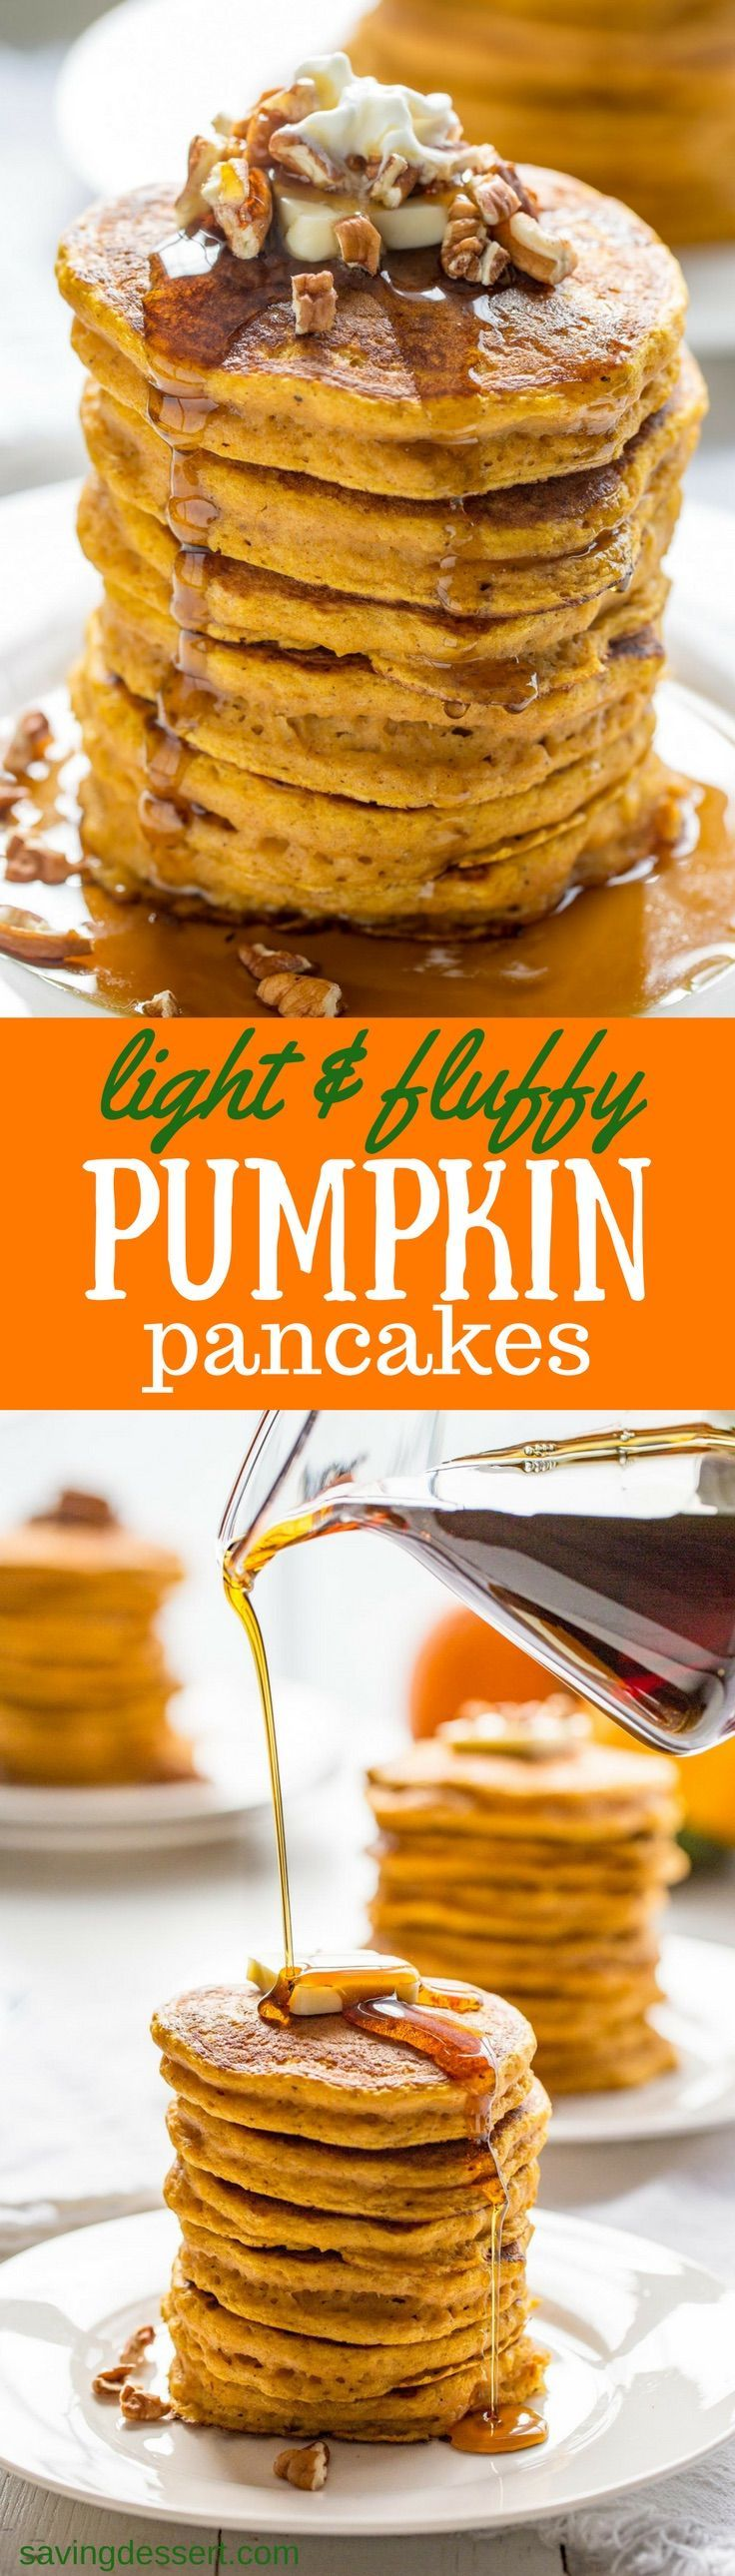 The Best Pumpkin Pancakes - thick, light and super fluffy, our Pumpkin Pancakes are well spiced, lightly sweet and easy to make too!  savingdessert.com #pumpkin #pancakes #pumpkinpiespice